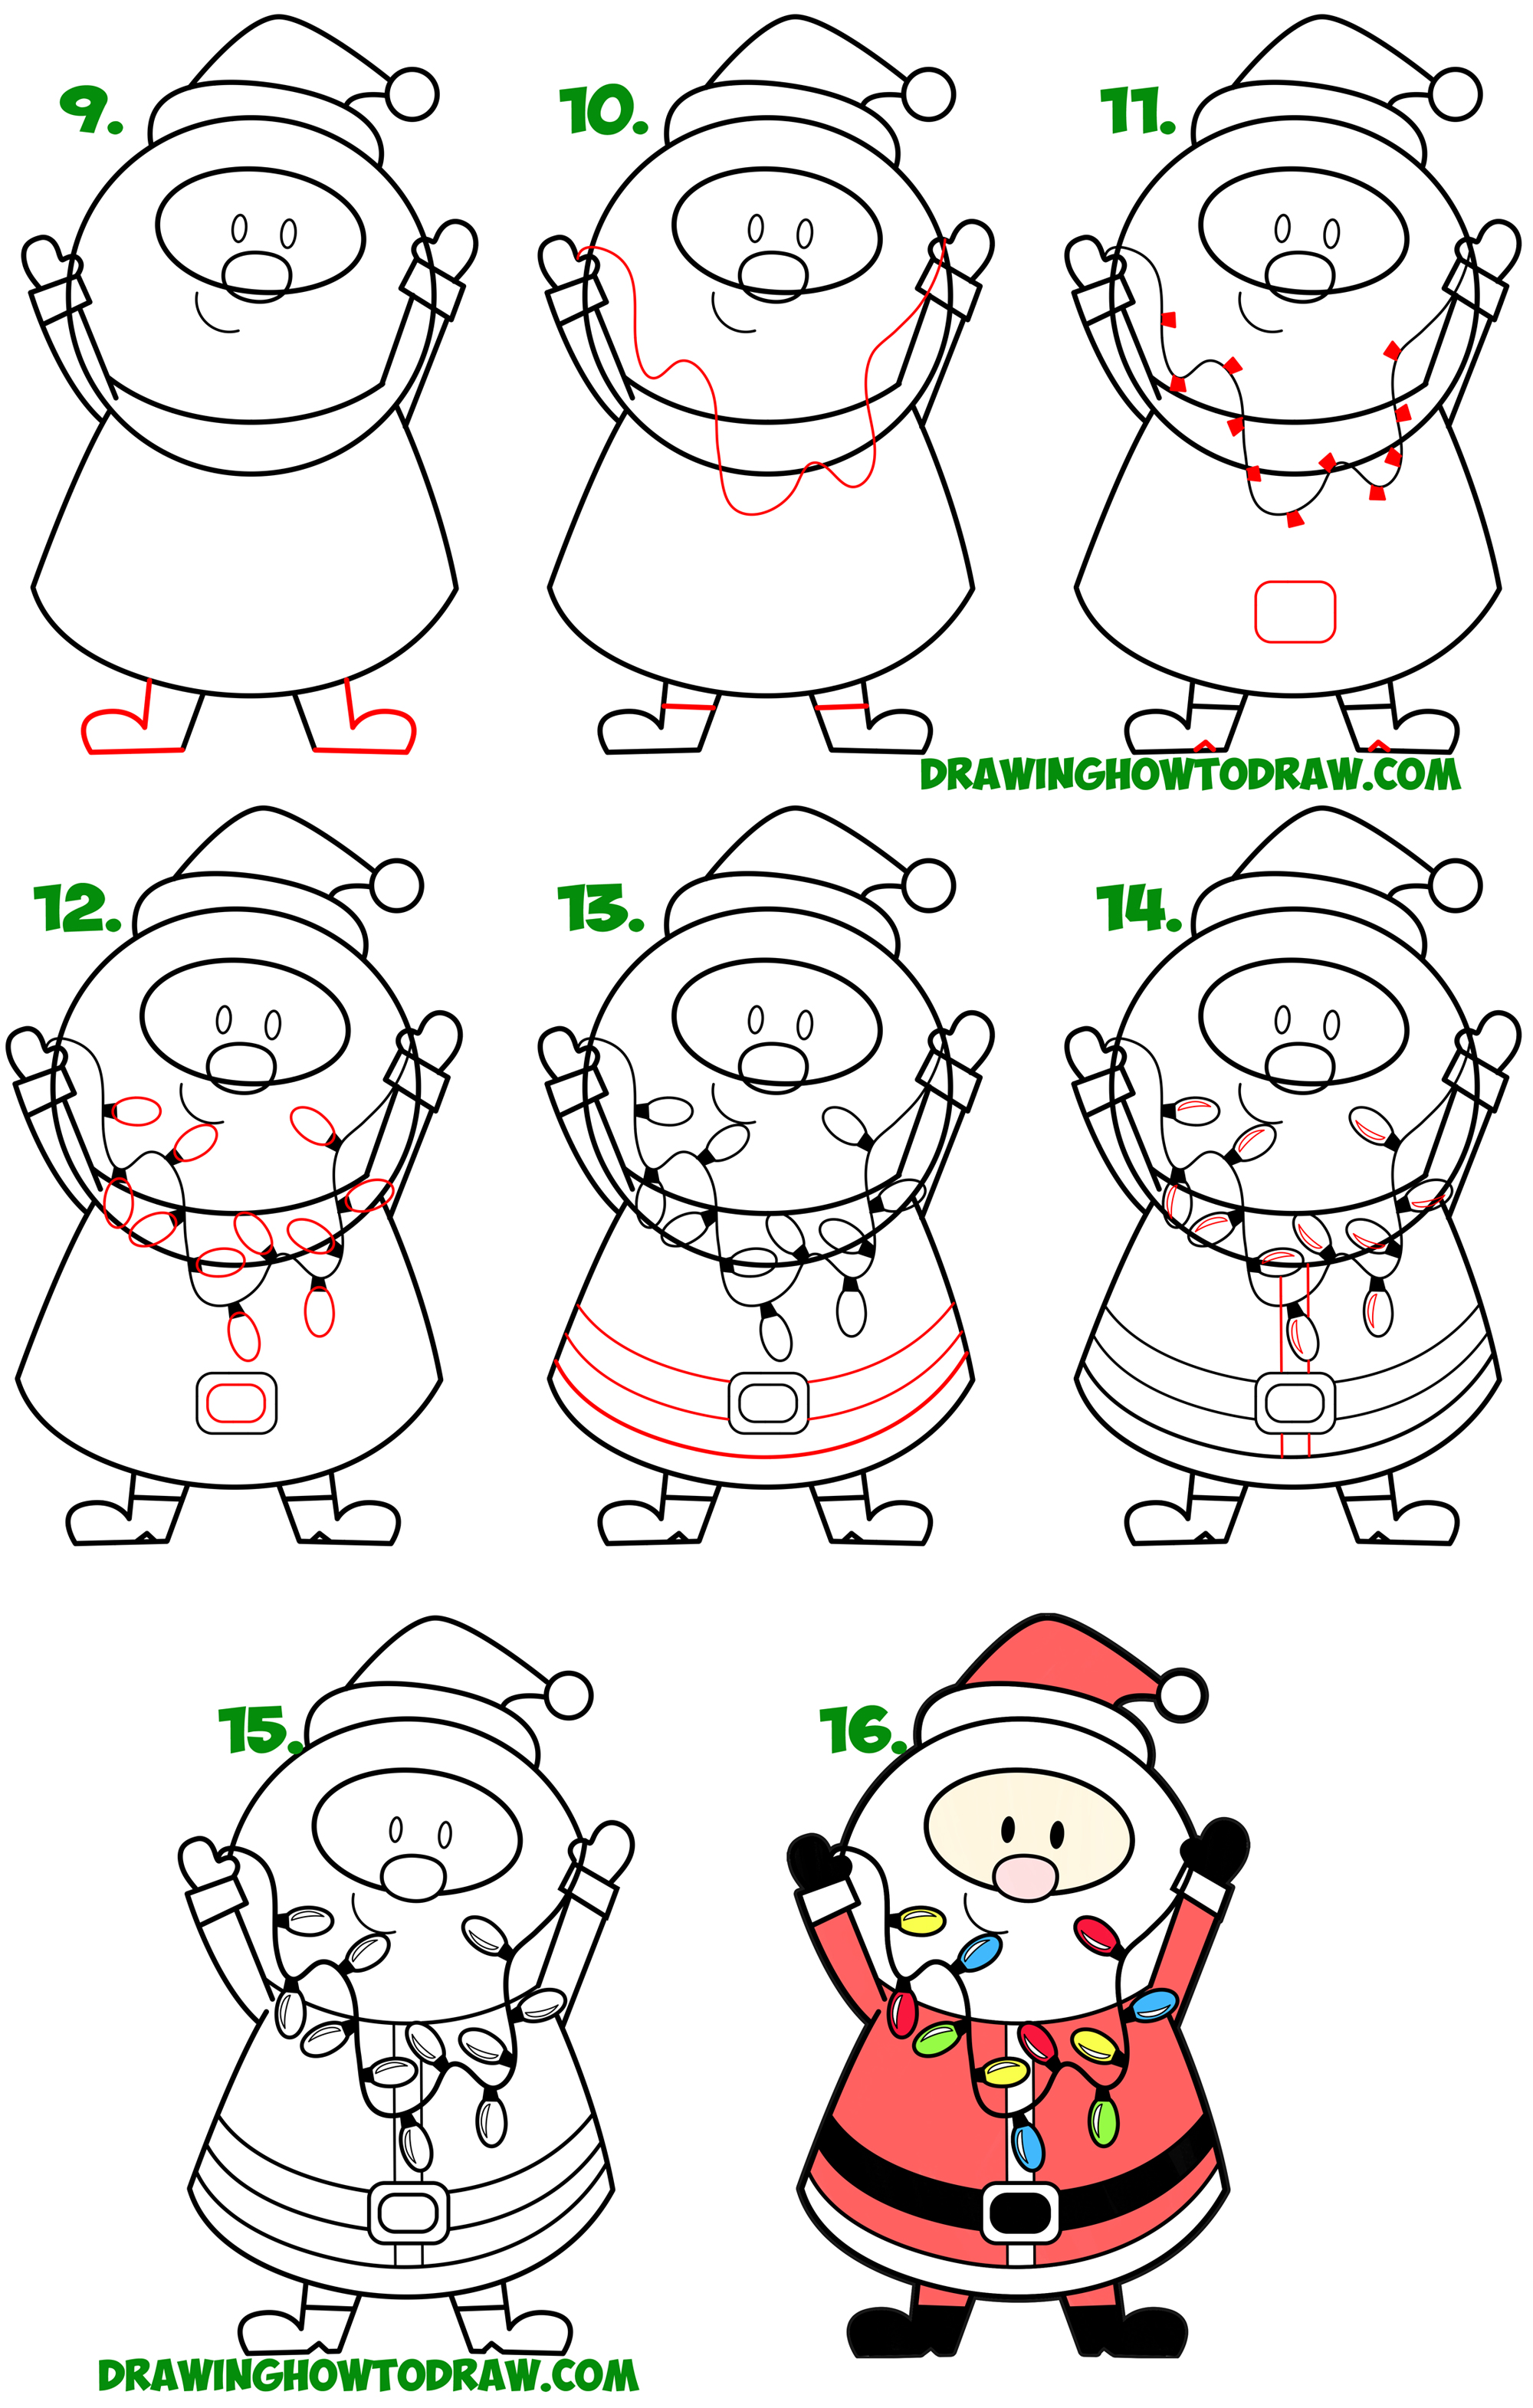 How to Draw Santa Claus Holding Christmas Lights Simple Steps Lesson for Children & Beginners